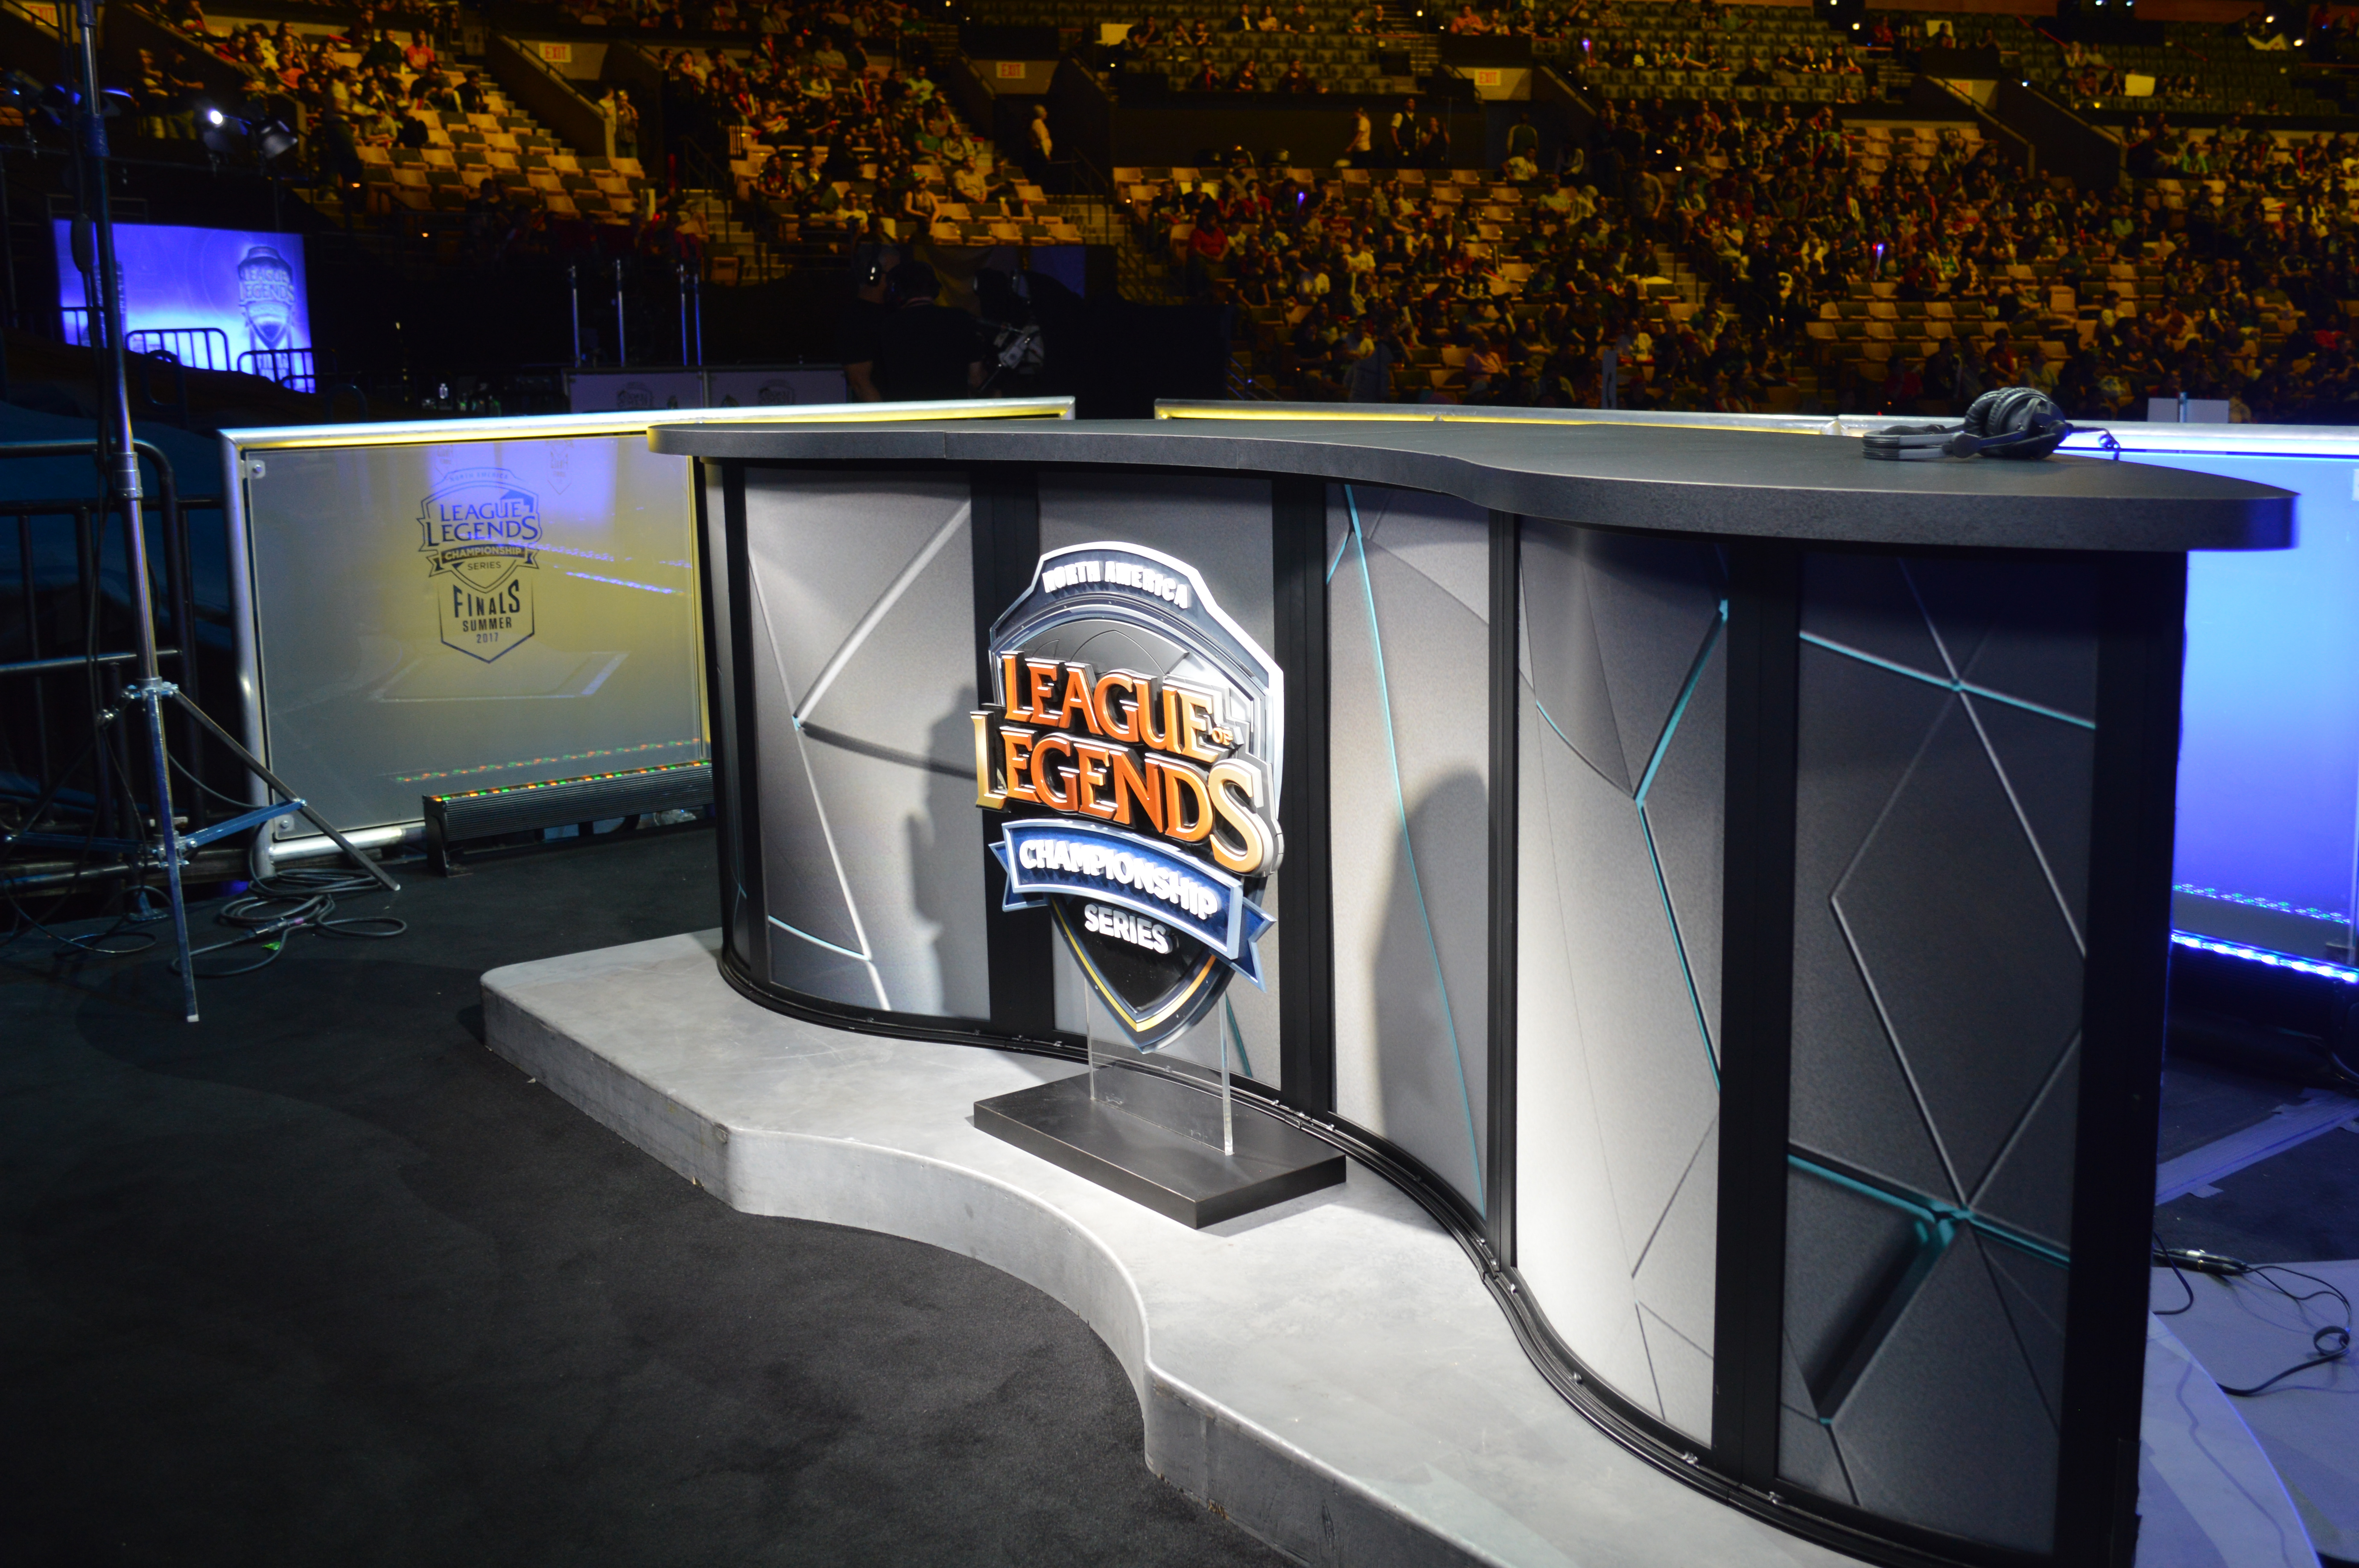 Backstage With Rivington: Seeing What Makes A NA LCS Finals   The Rift  Herald